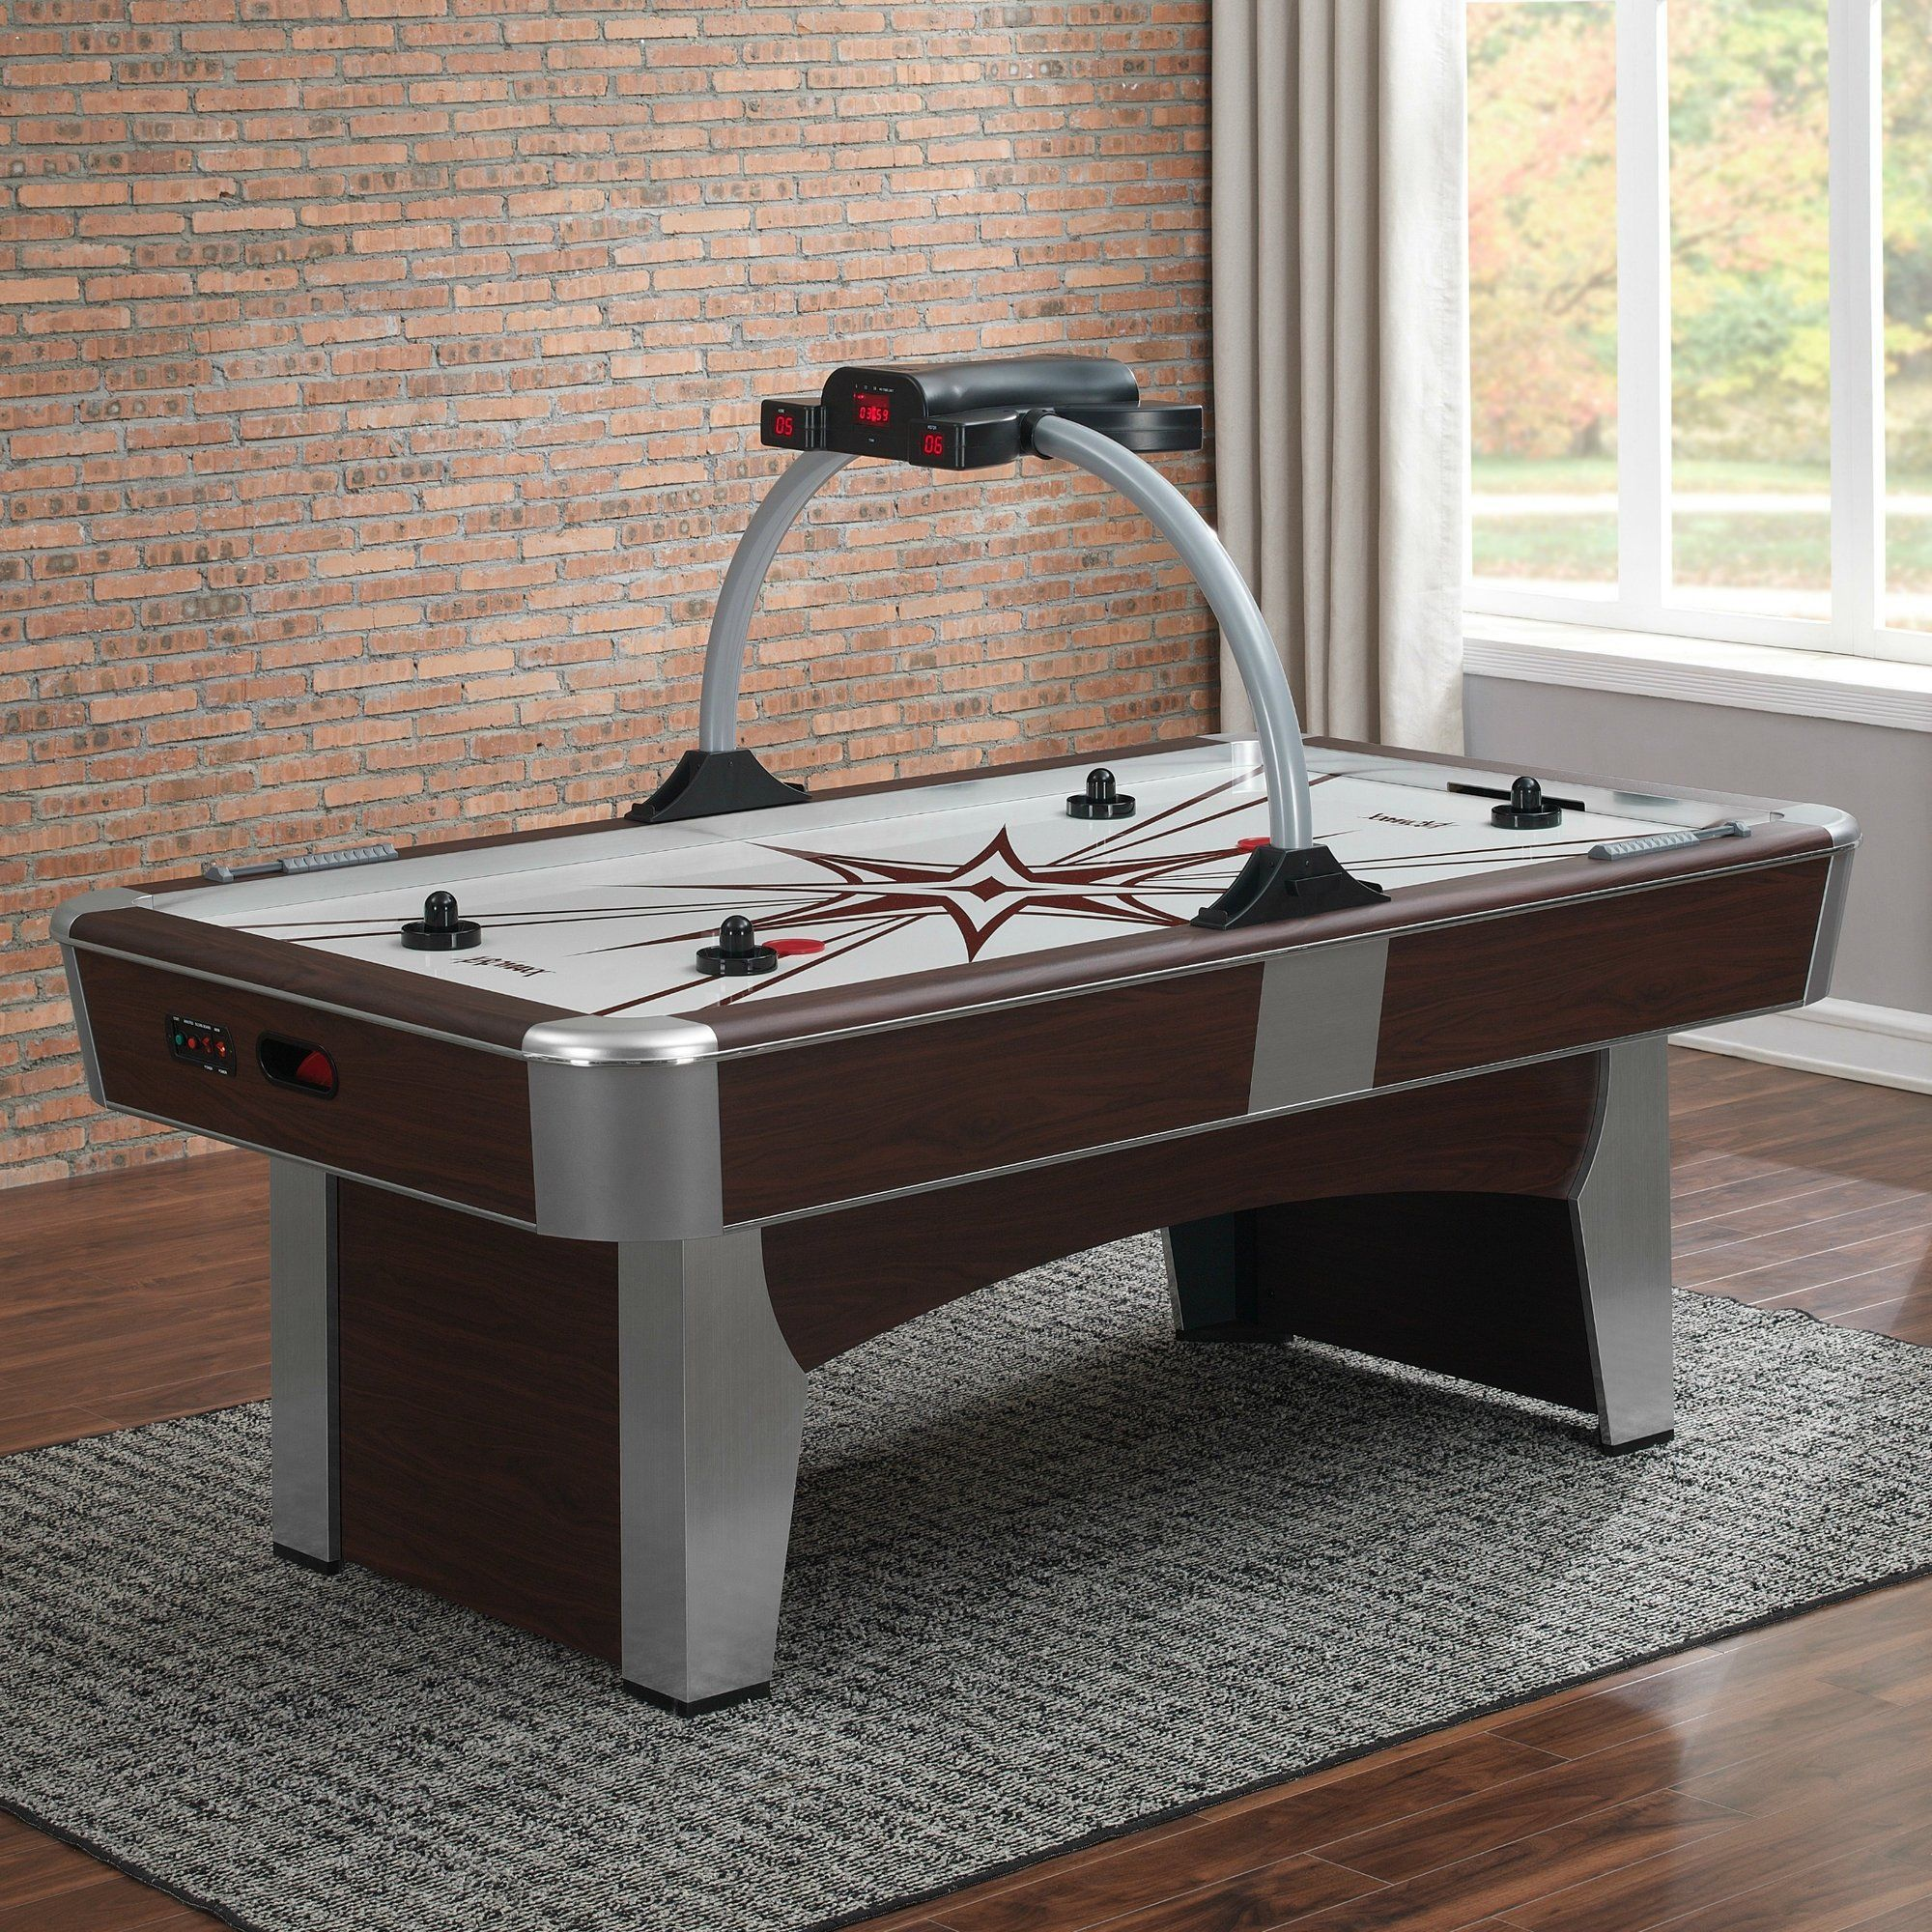 7' Two Player Air Hockey Table with Digital Scoreboard in